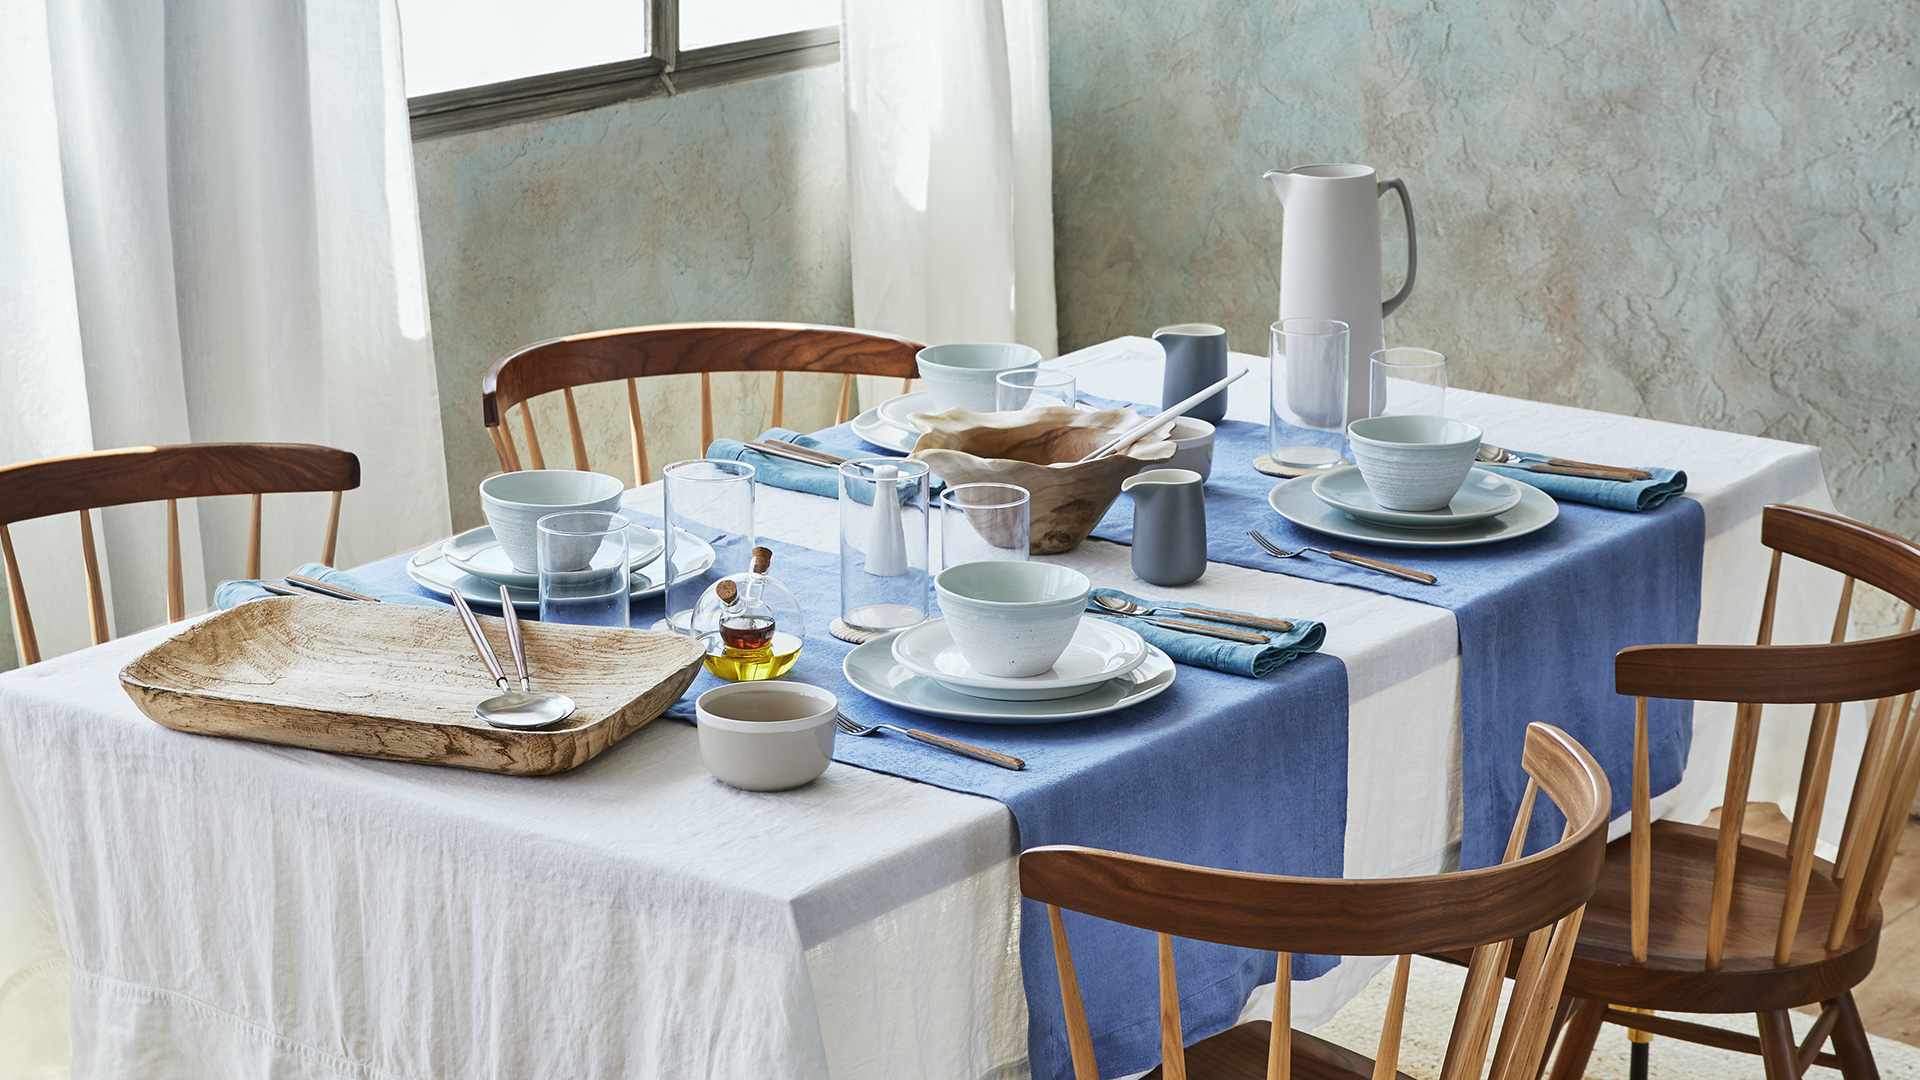 Spendi bene magazine artisanal blue di zara home for Cuscini arredo zara home